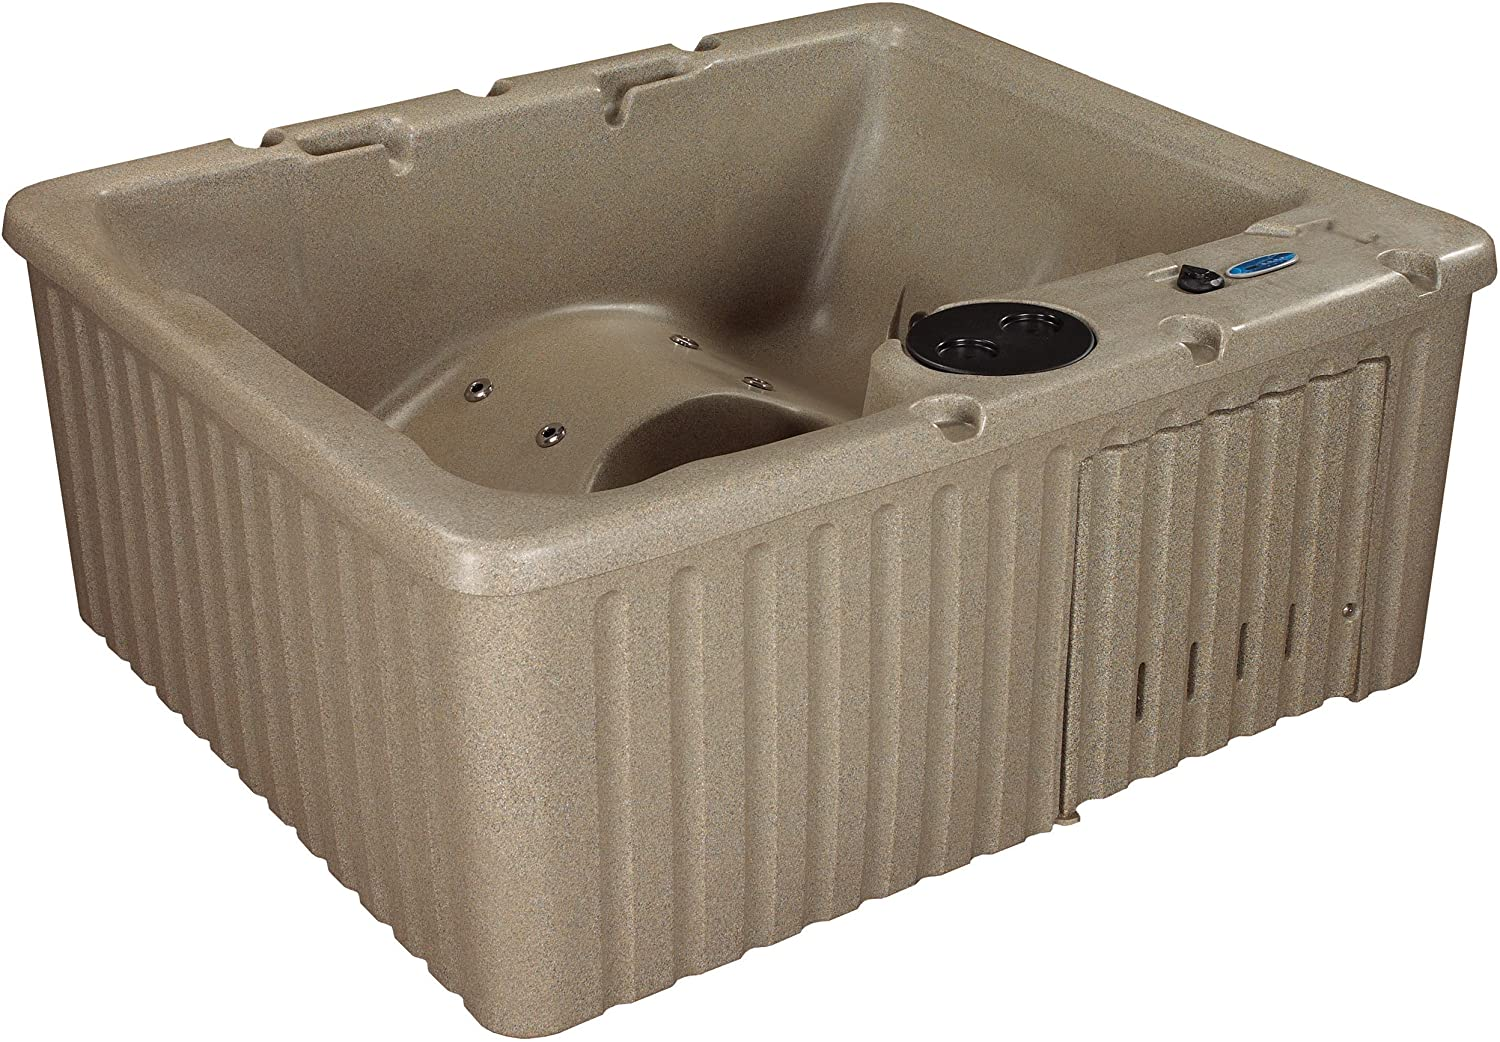 1. 14-Jet Newport Hot Tub from Essential Hot Tubs